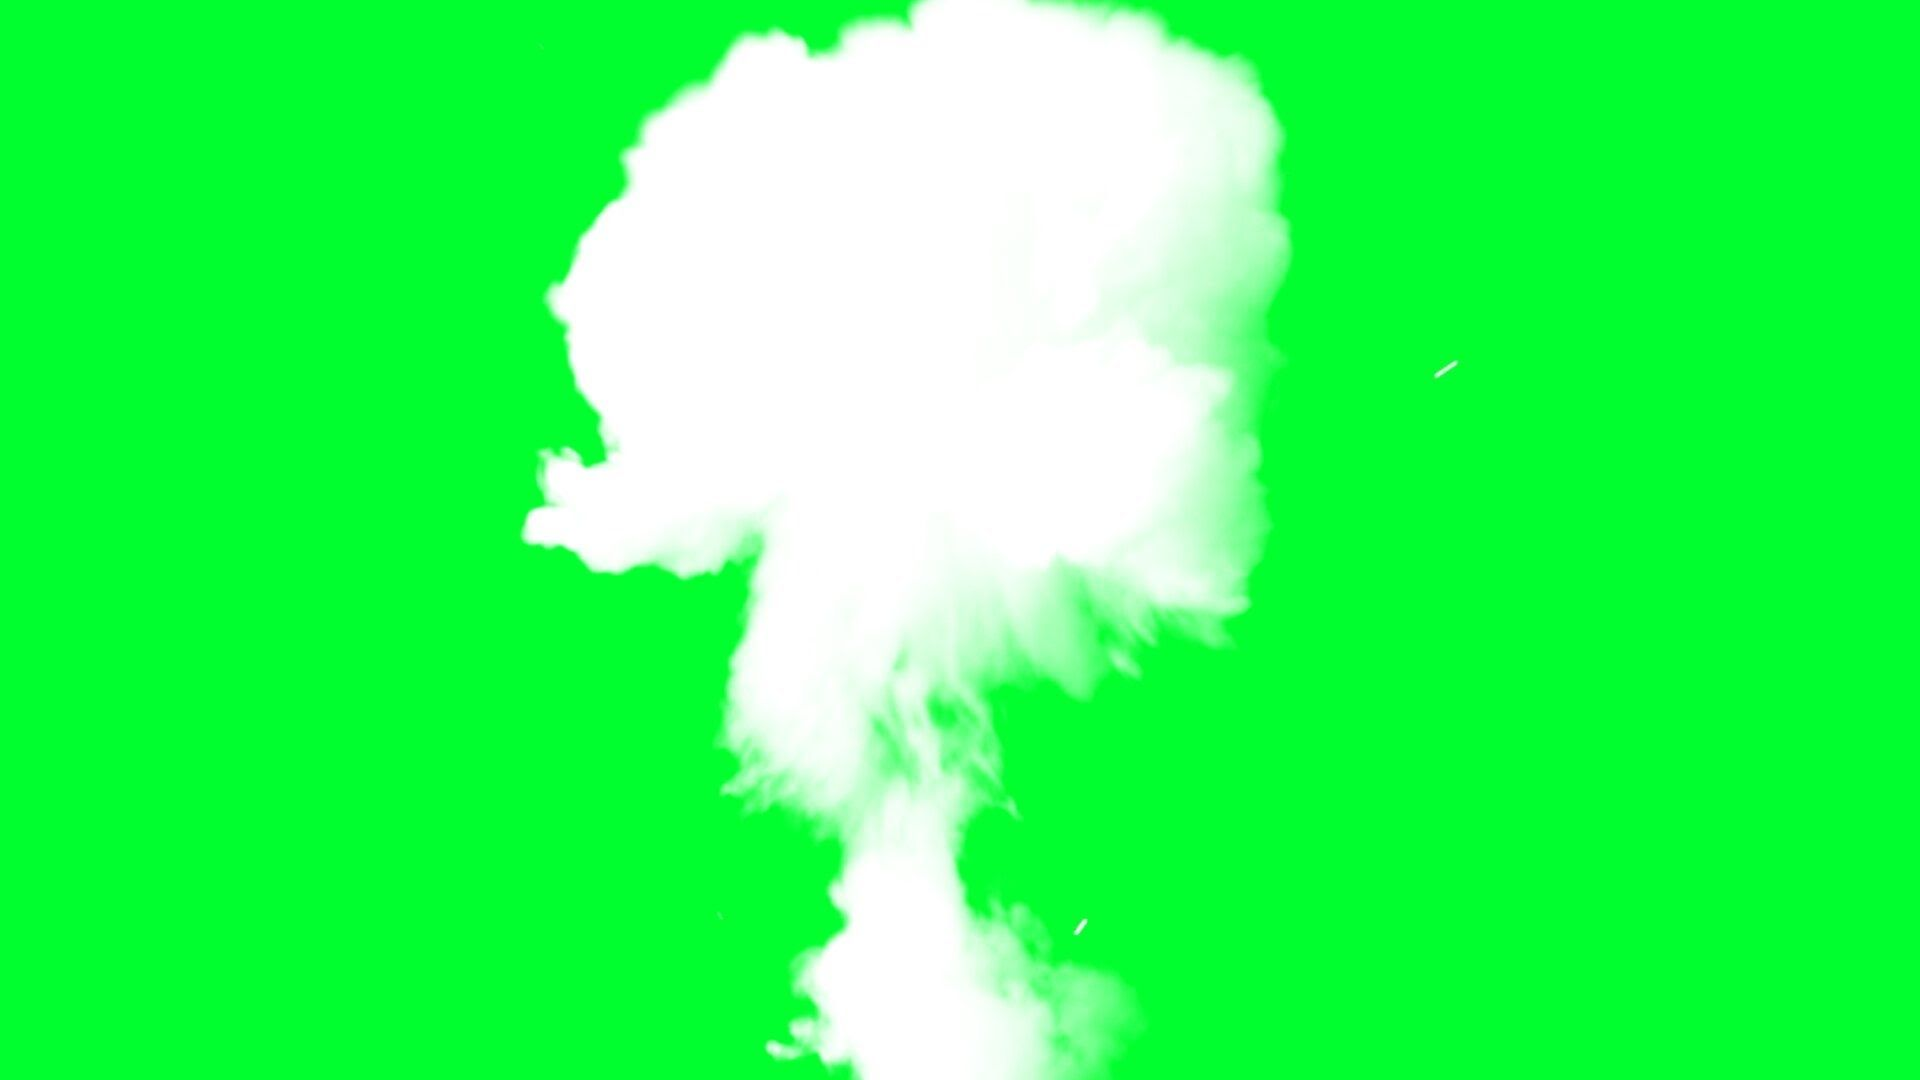 Smoke Explosion Smoke Cloud Green Screen Effects Greenscreen